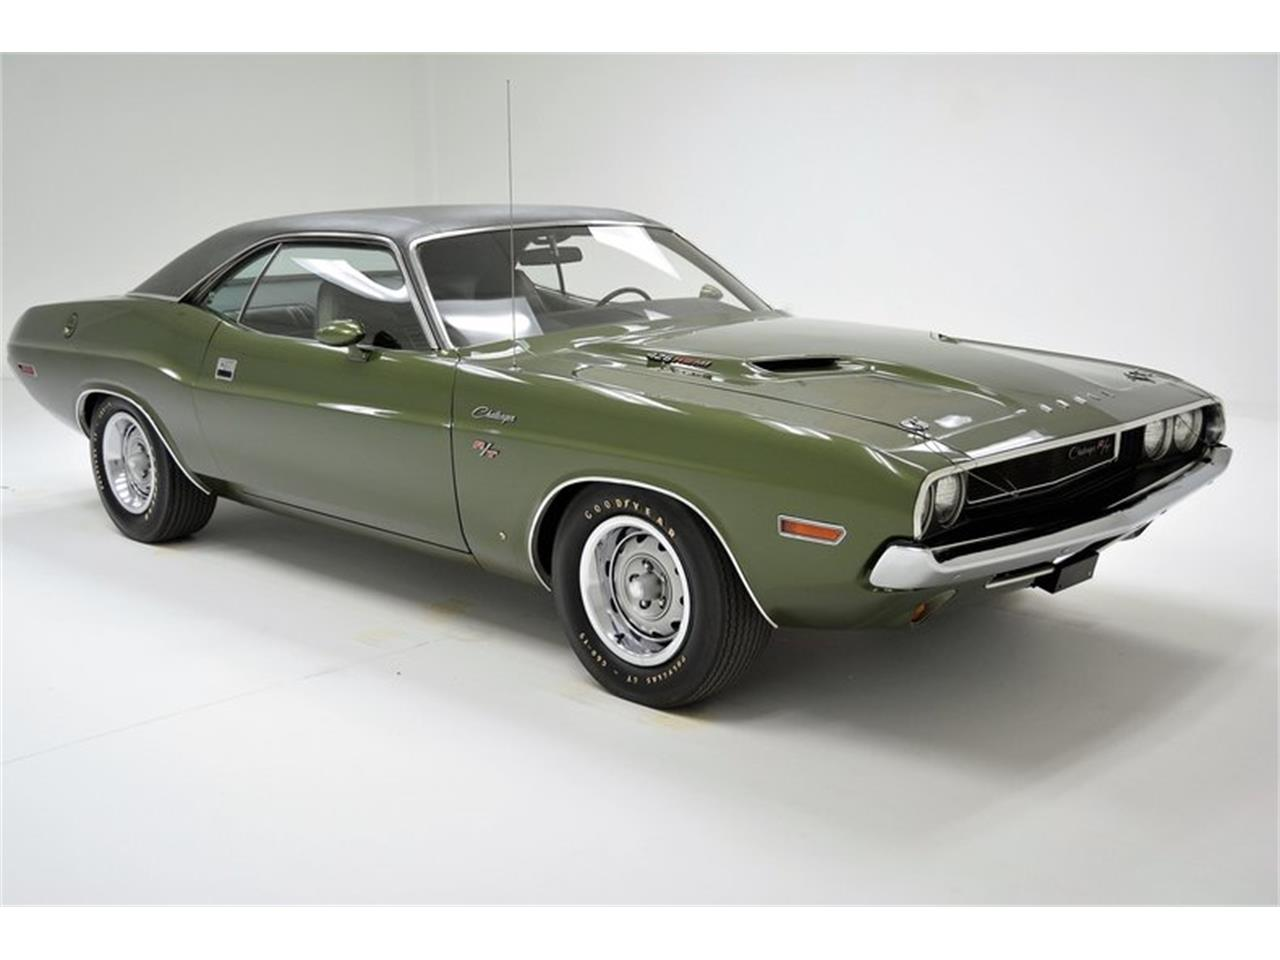 Large Picture of Classic 1970 Challenger R/T located in Pennsylvania - $395,000.00 Offered by Classic Auto Mall - MZHE